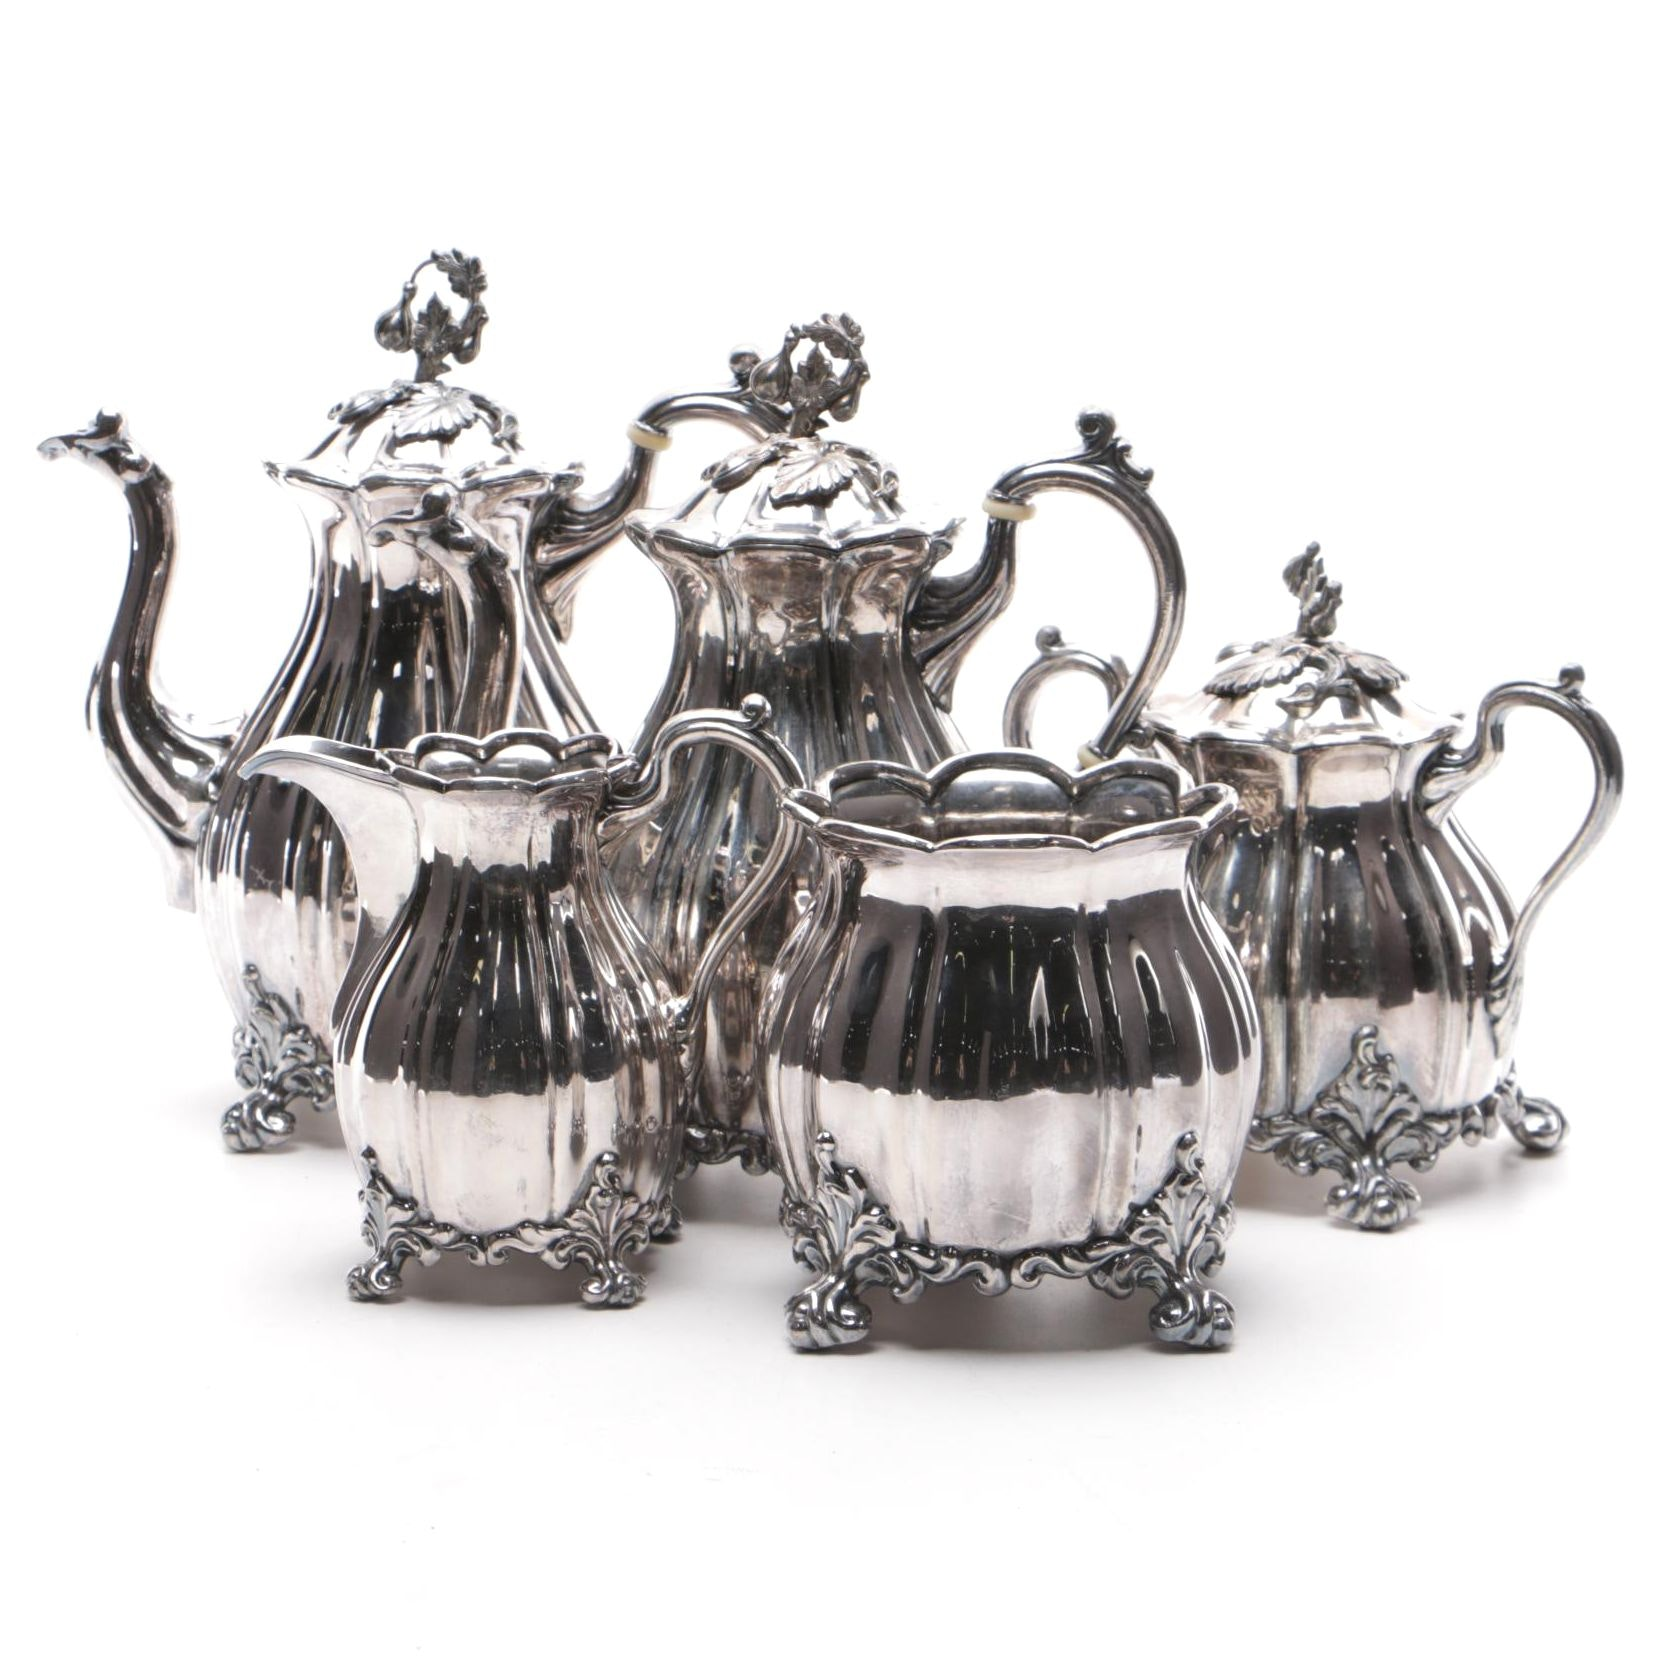 Reed & Barton Silver Plate Tea and Coffee Service